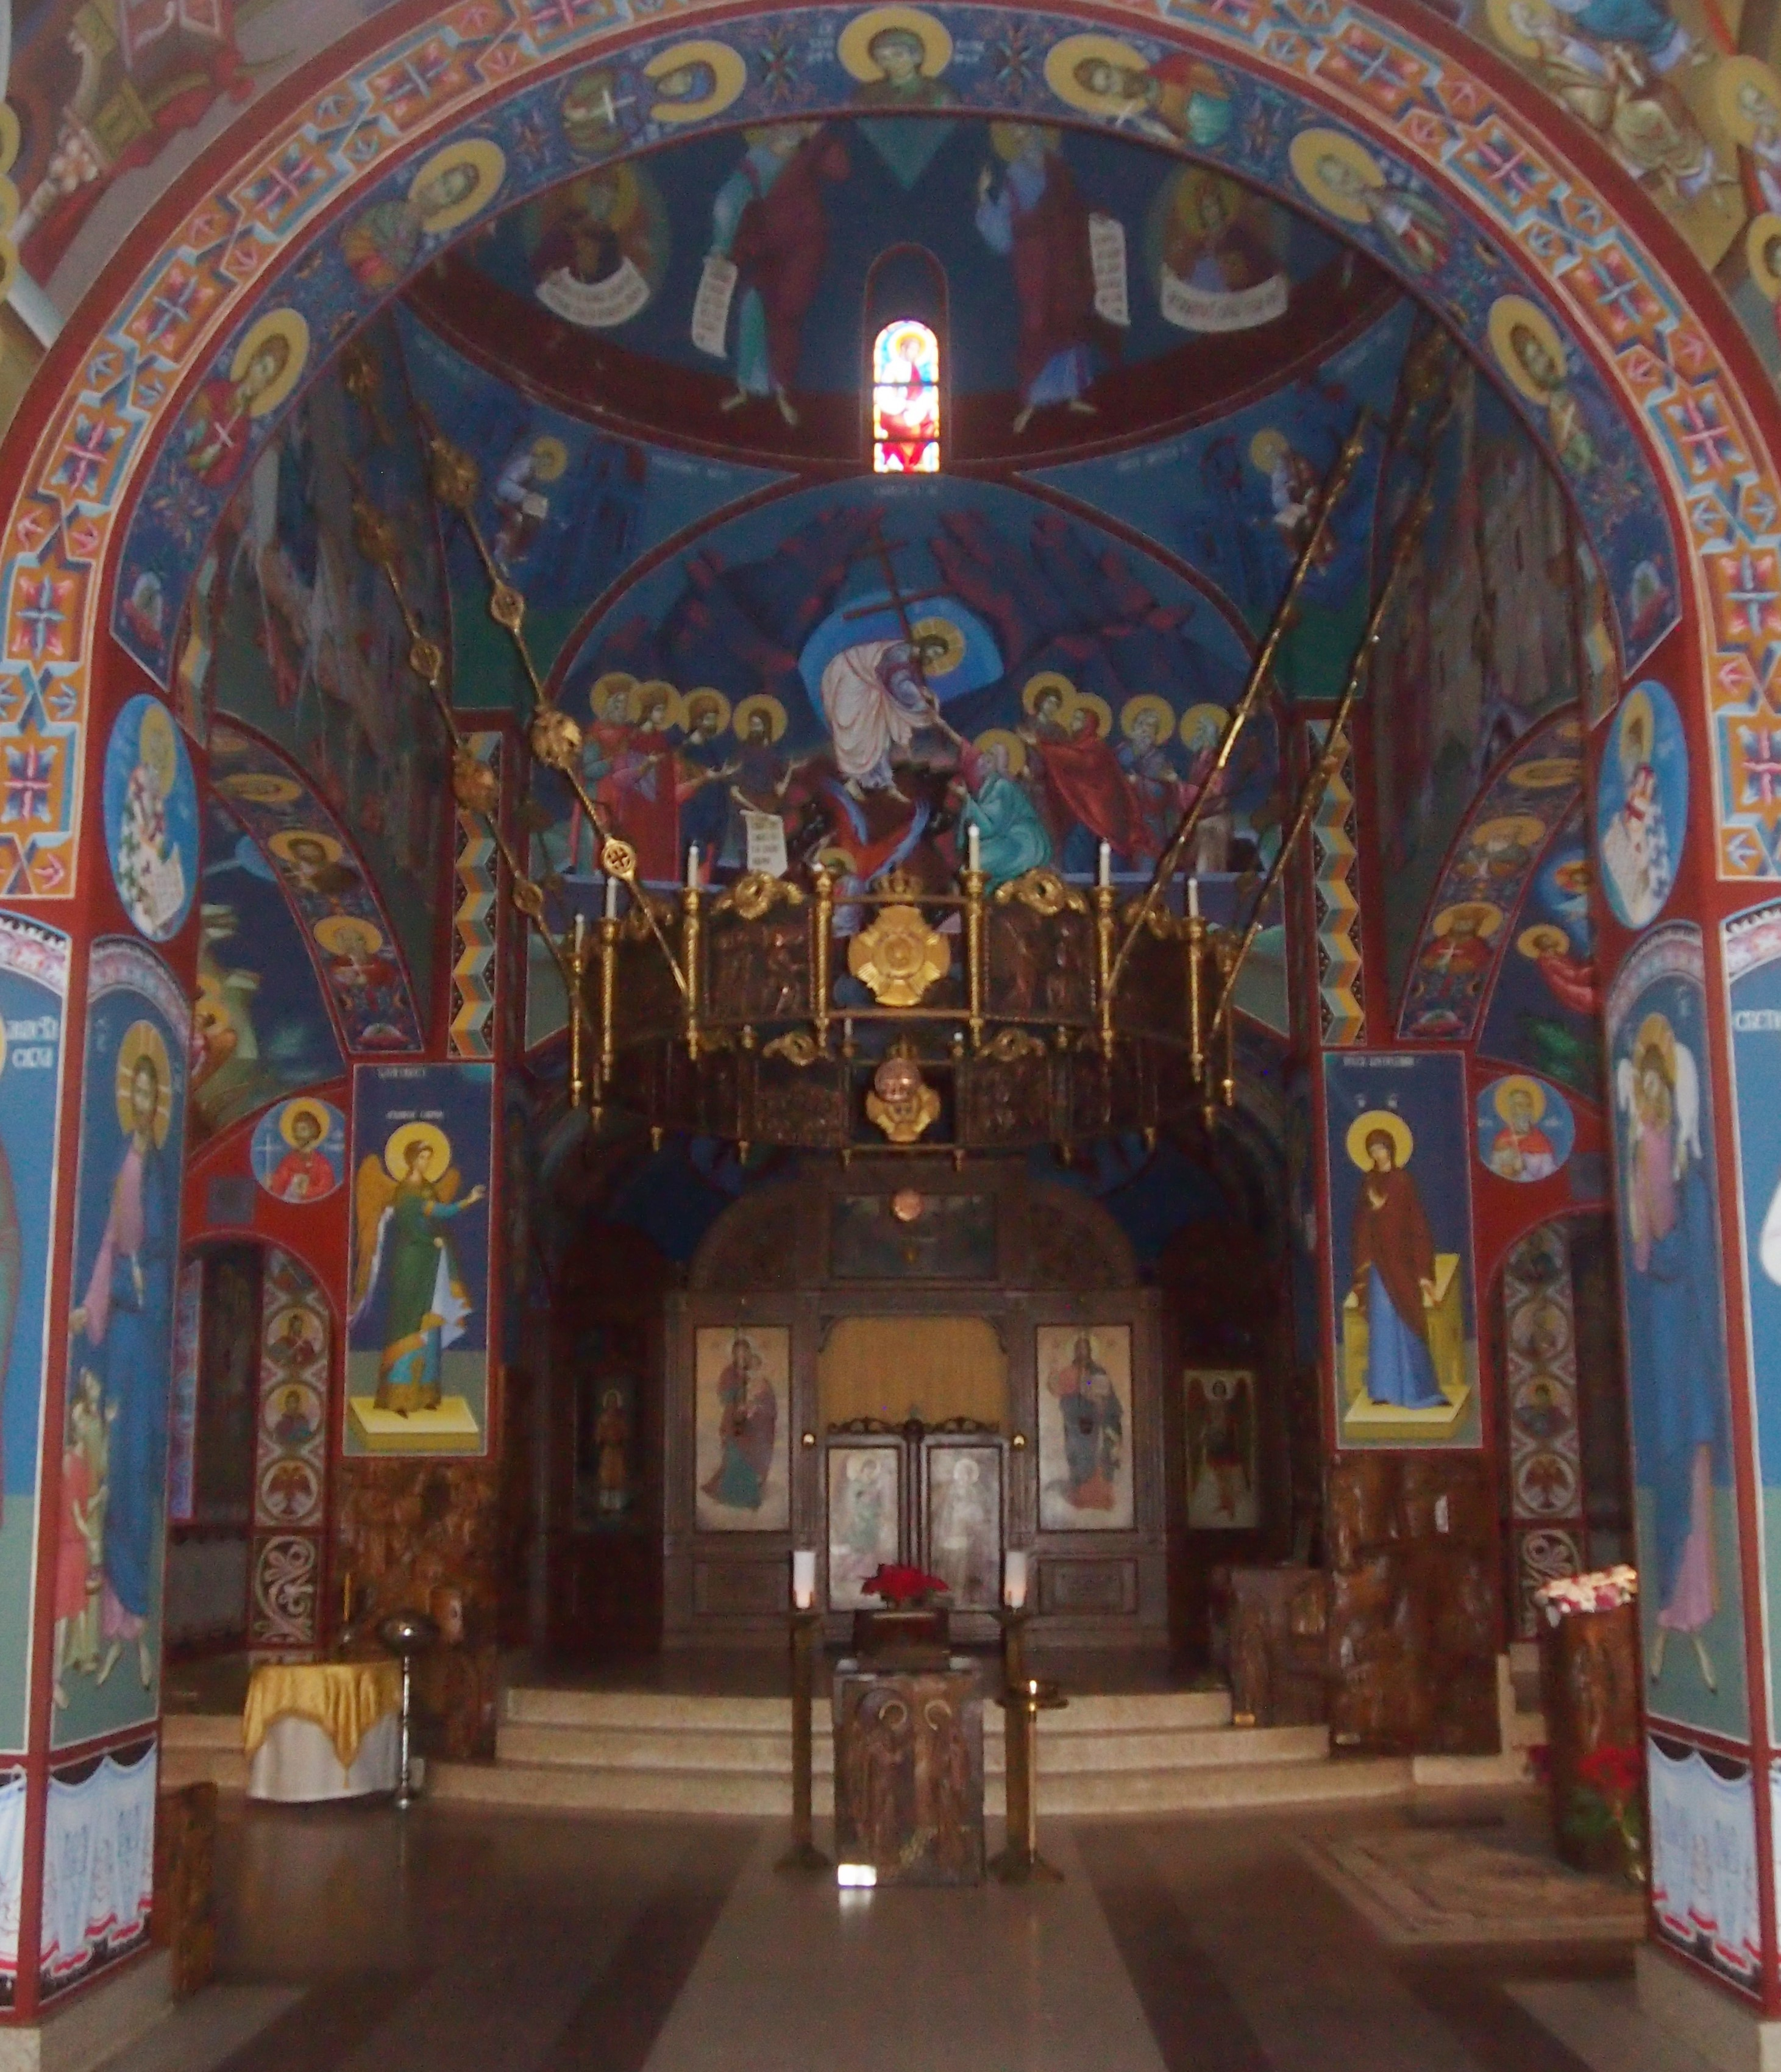 The church of St. Sava Monastery, Lake County Ill.